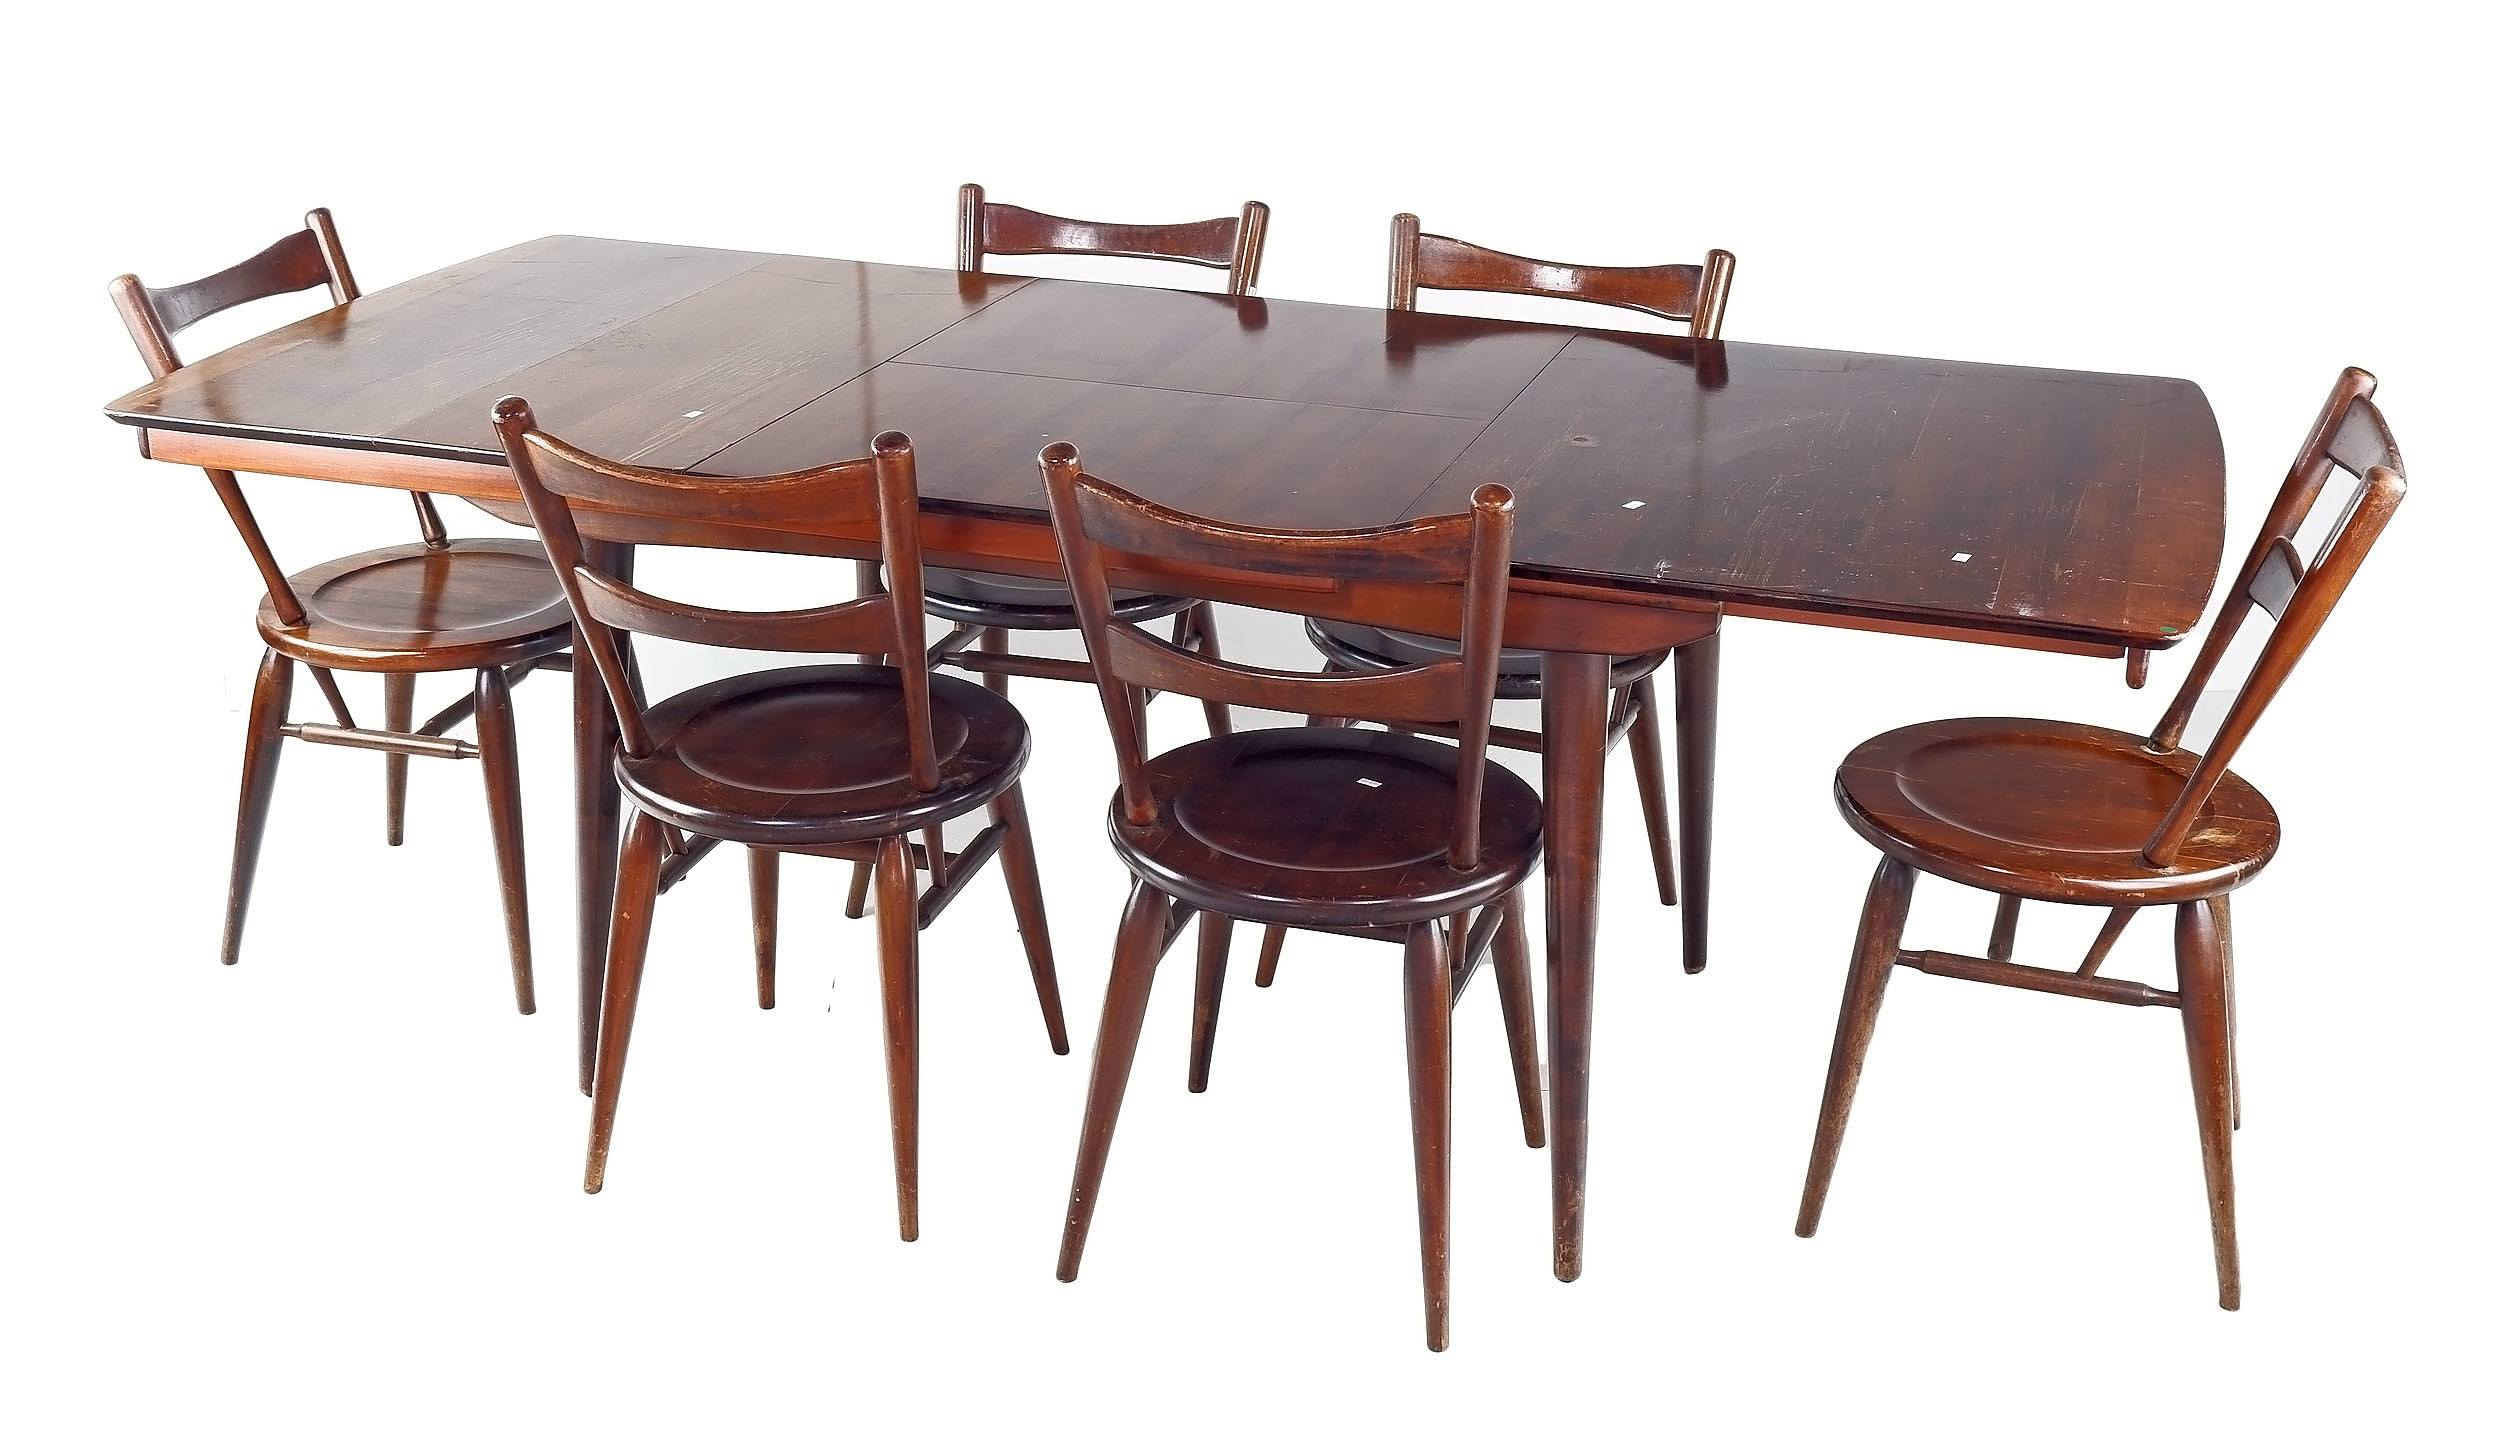 'Heritage Furniture Teak Twin Extension Dining Table with Six Matching Chairs'